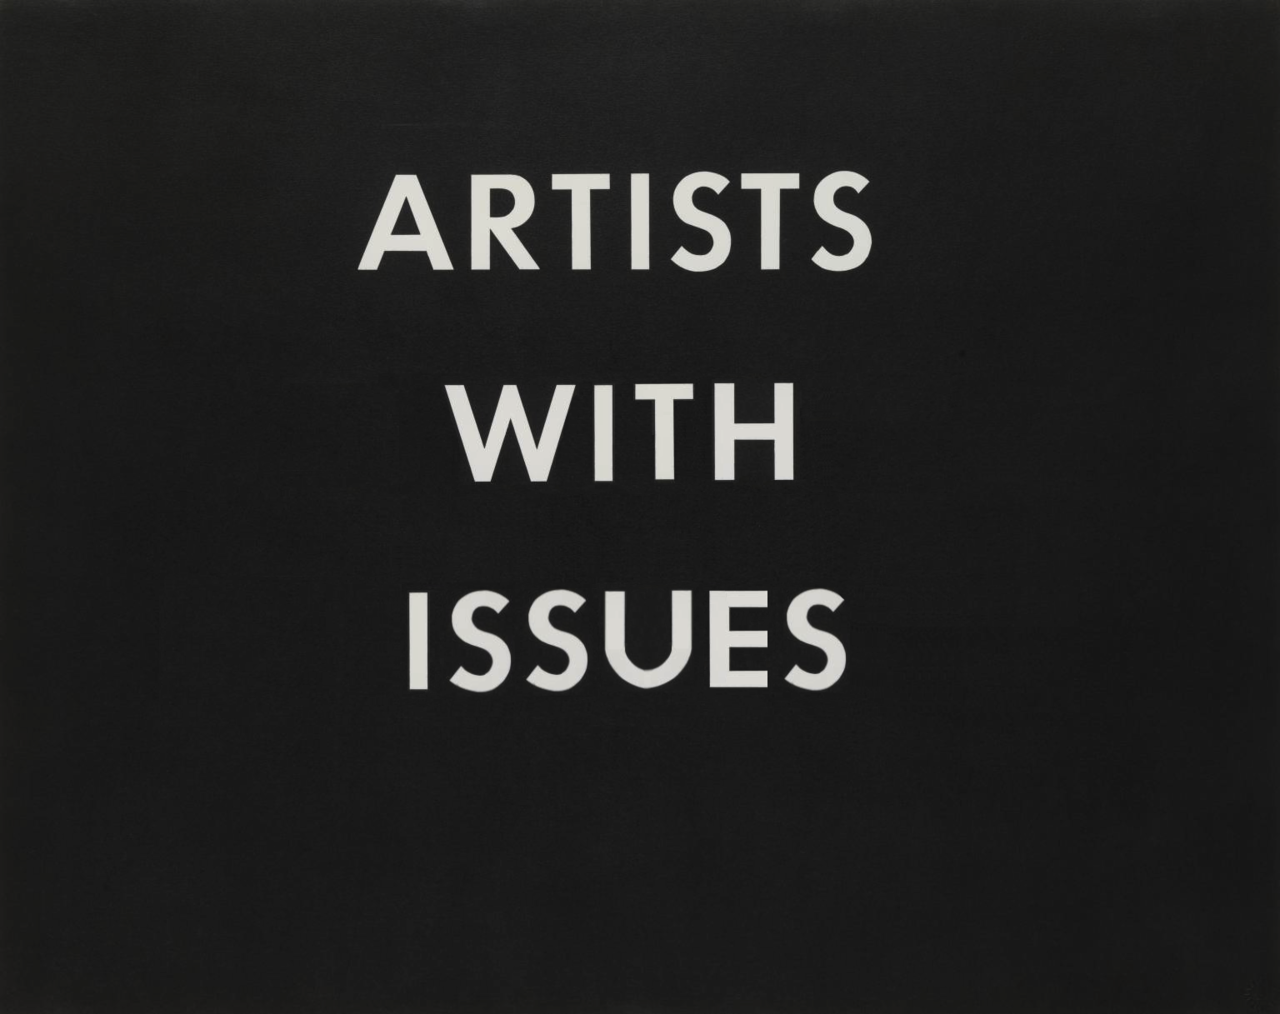 ARTISTS WITH ISSUES